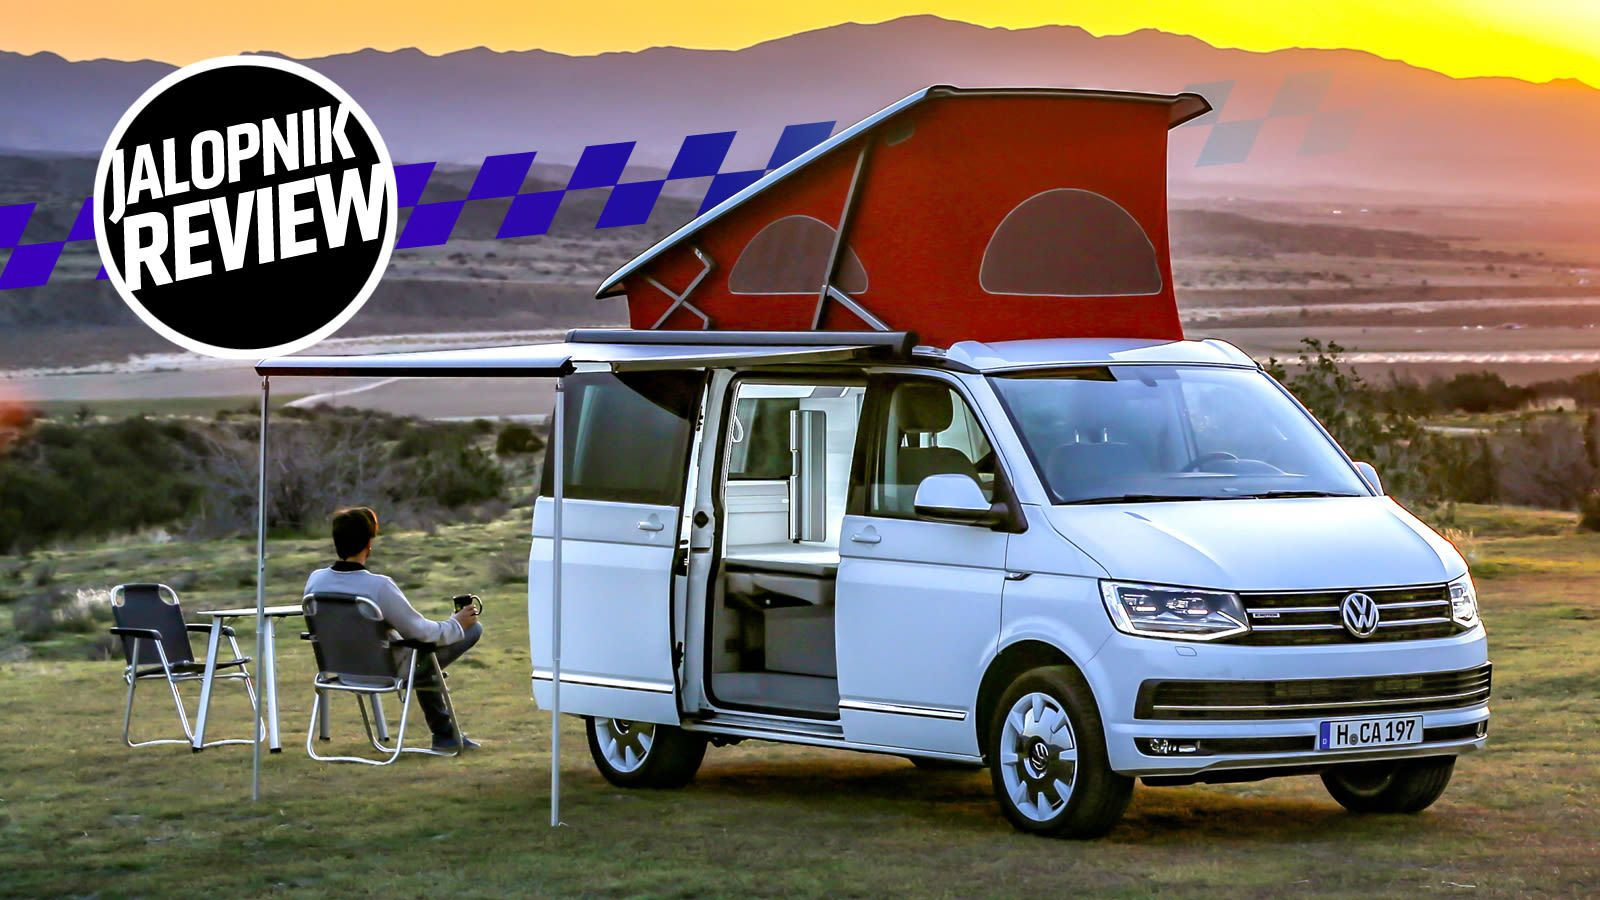 The 2018 Vw T6 California Van Is The Best Car That S Also A House Volkswagen Bus Interior